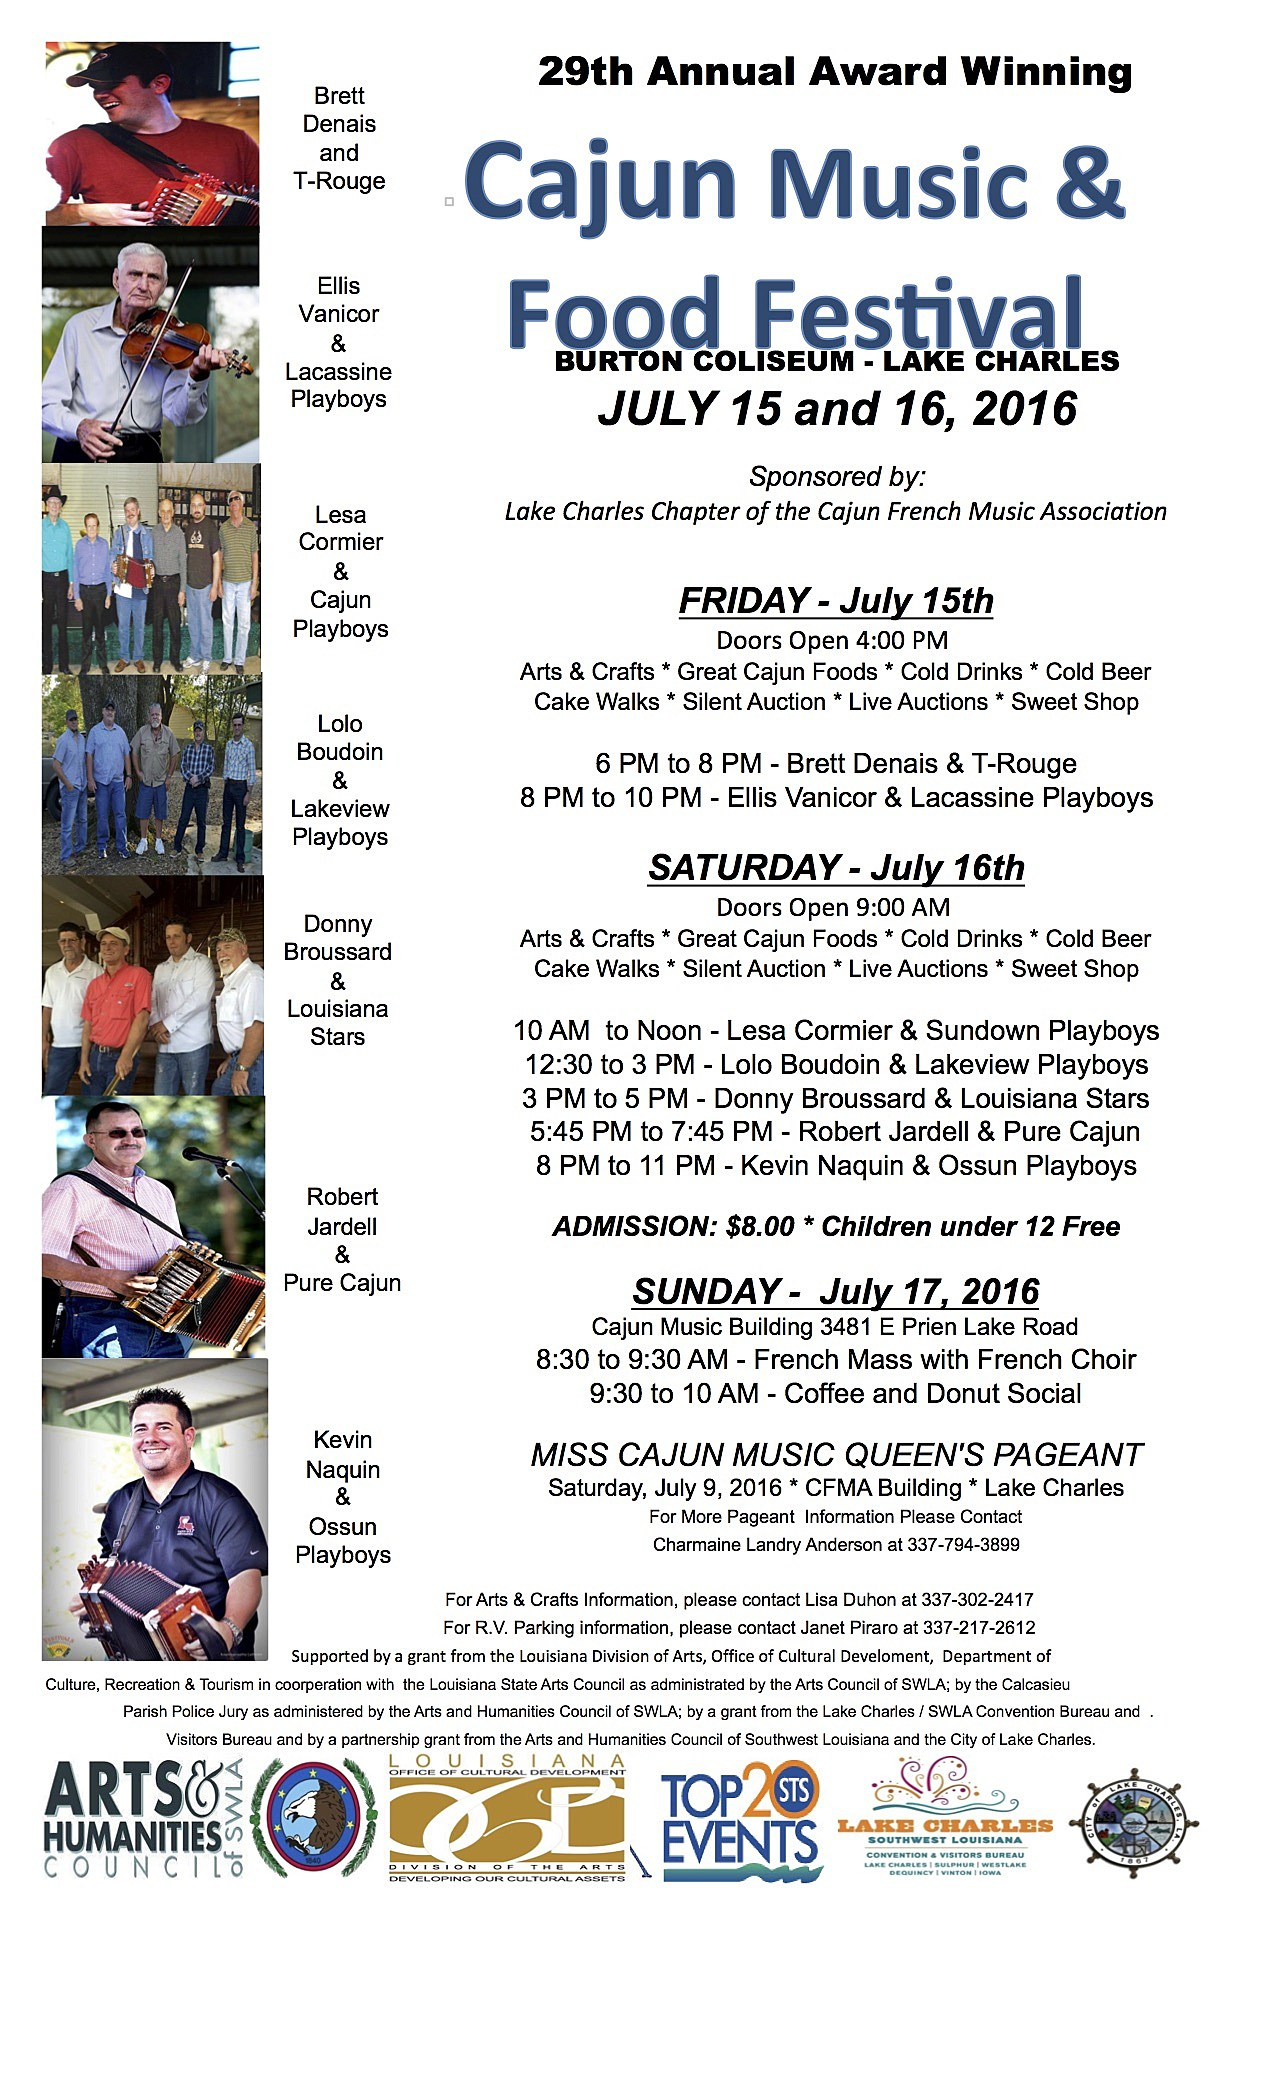 Cajun Food and Music Festival (Provided By Renee Daigle)